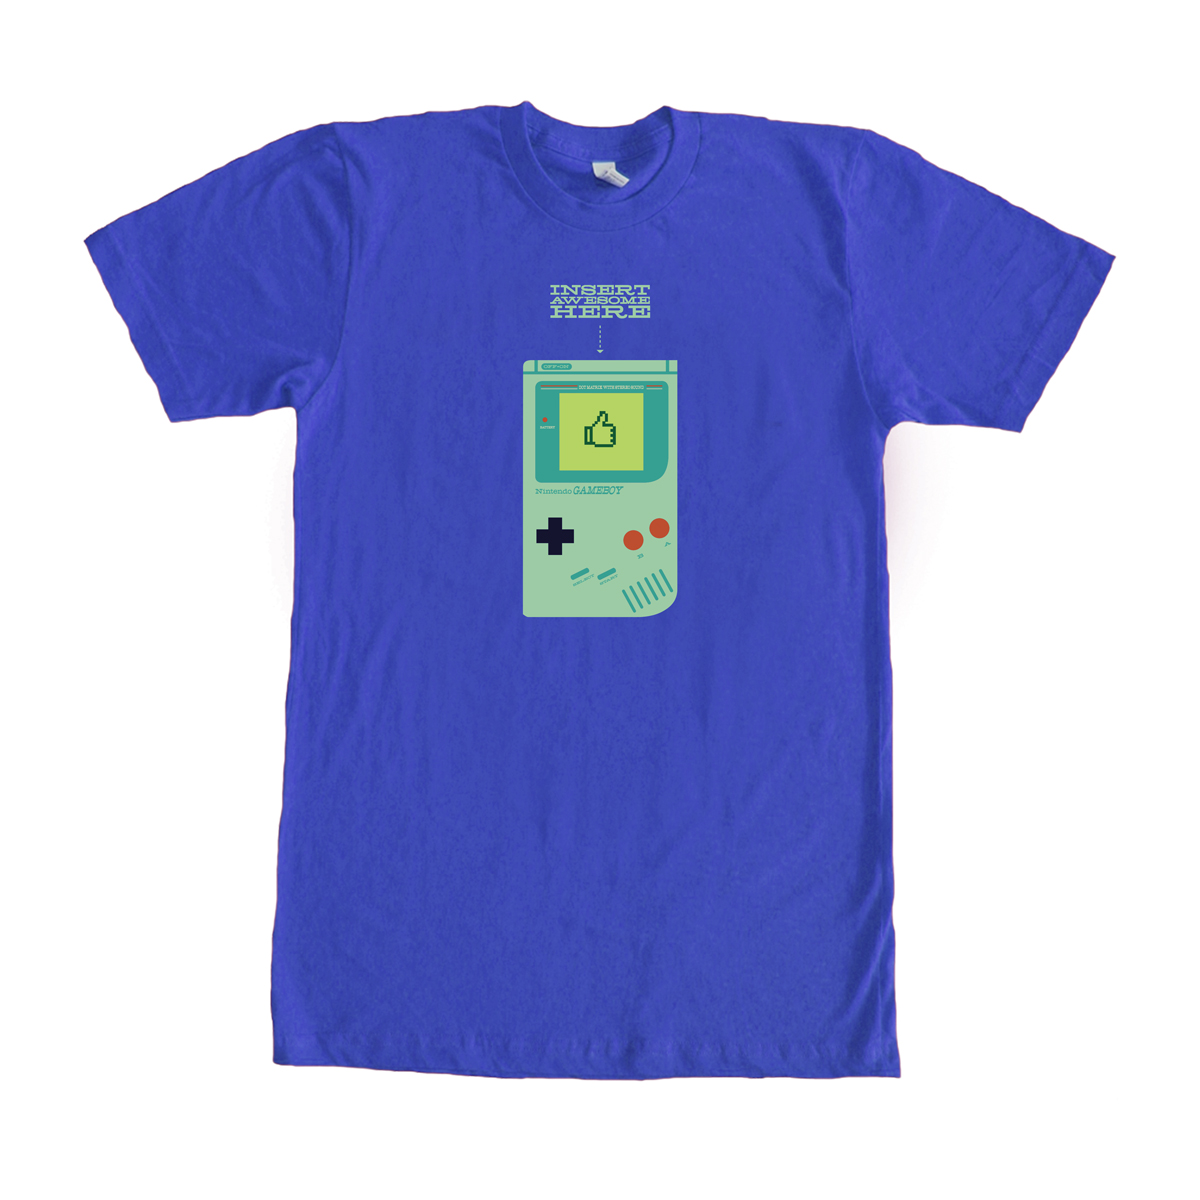 GameBoy_Shirt.jpg